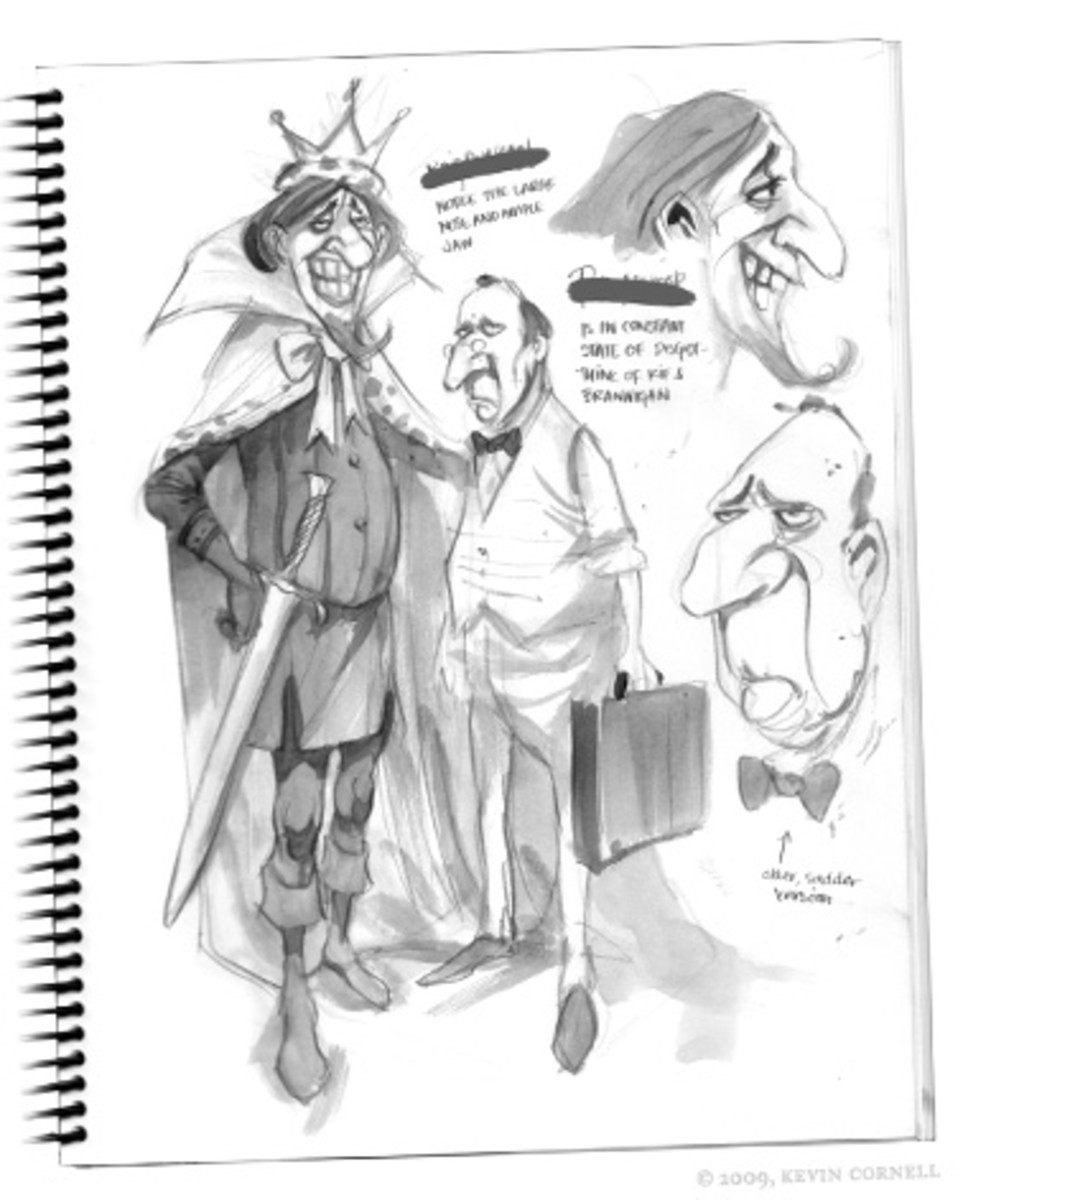 Some form of sketches produced by Concept Artists